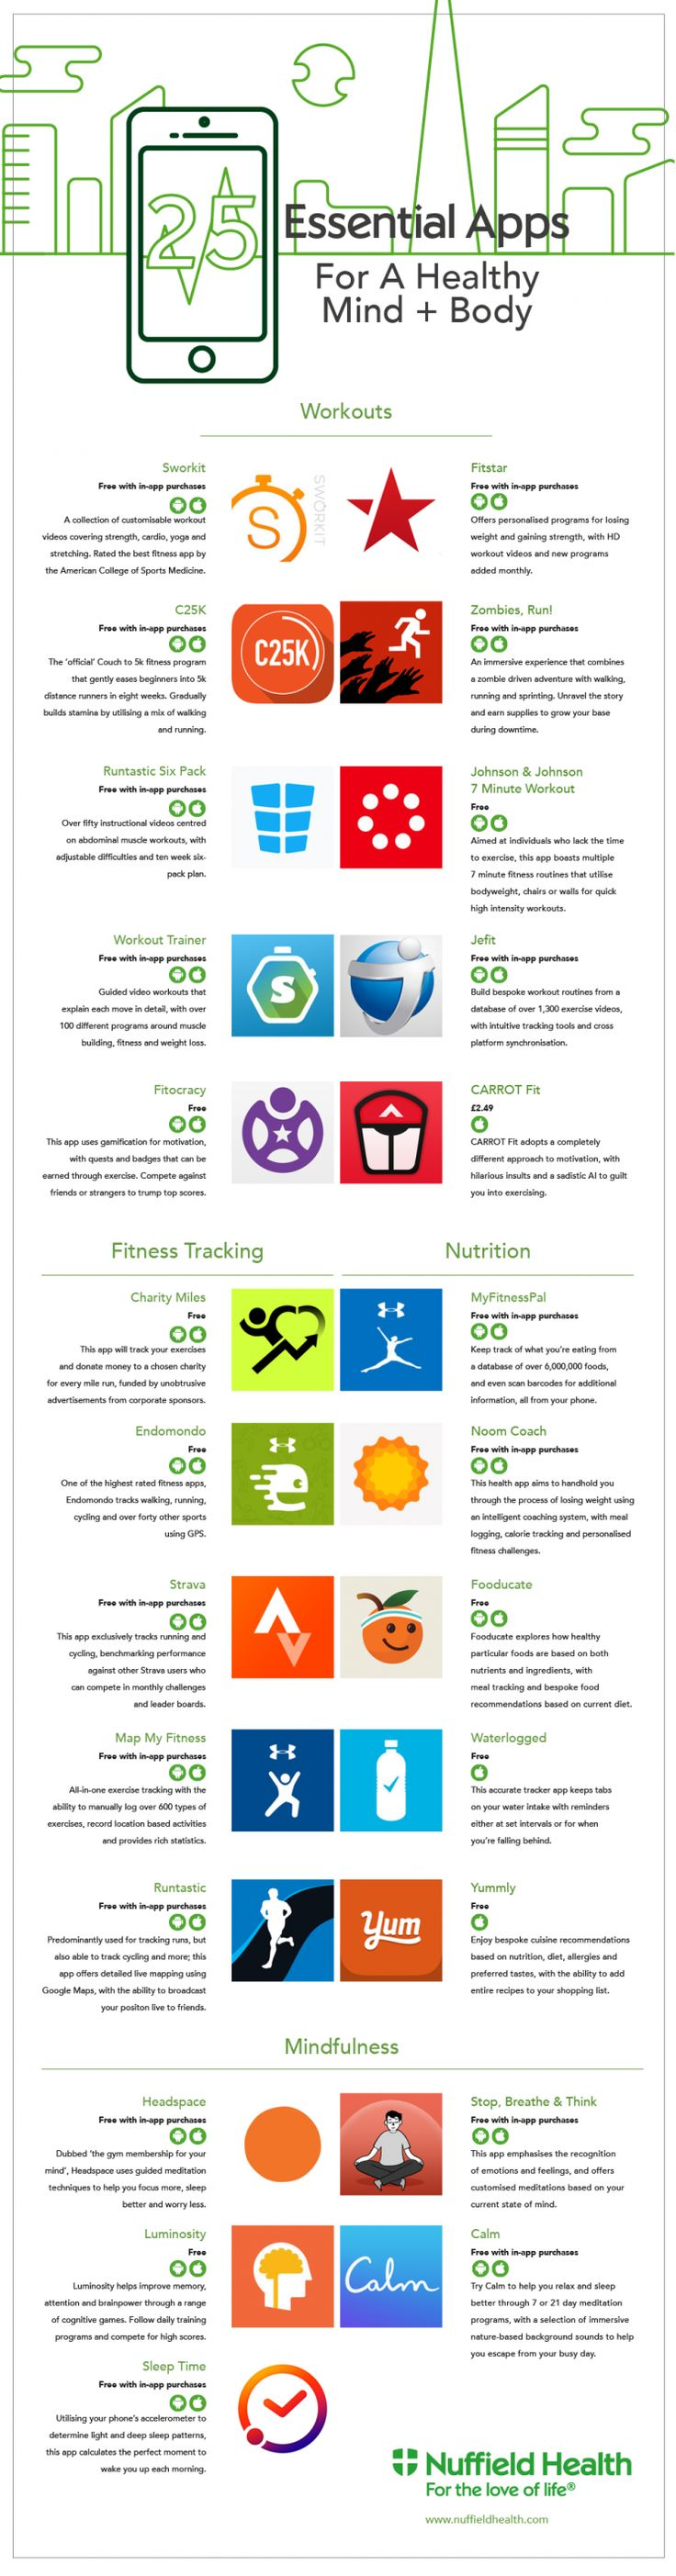 25 essential apps for a healthy mind and body #infographic #Health #Apps